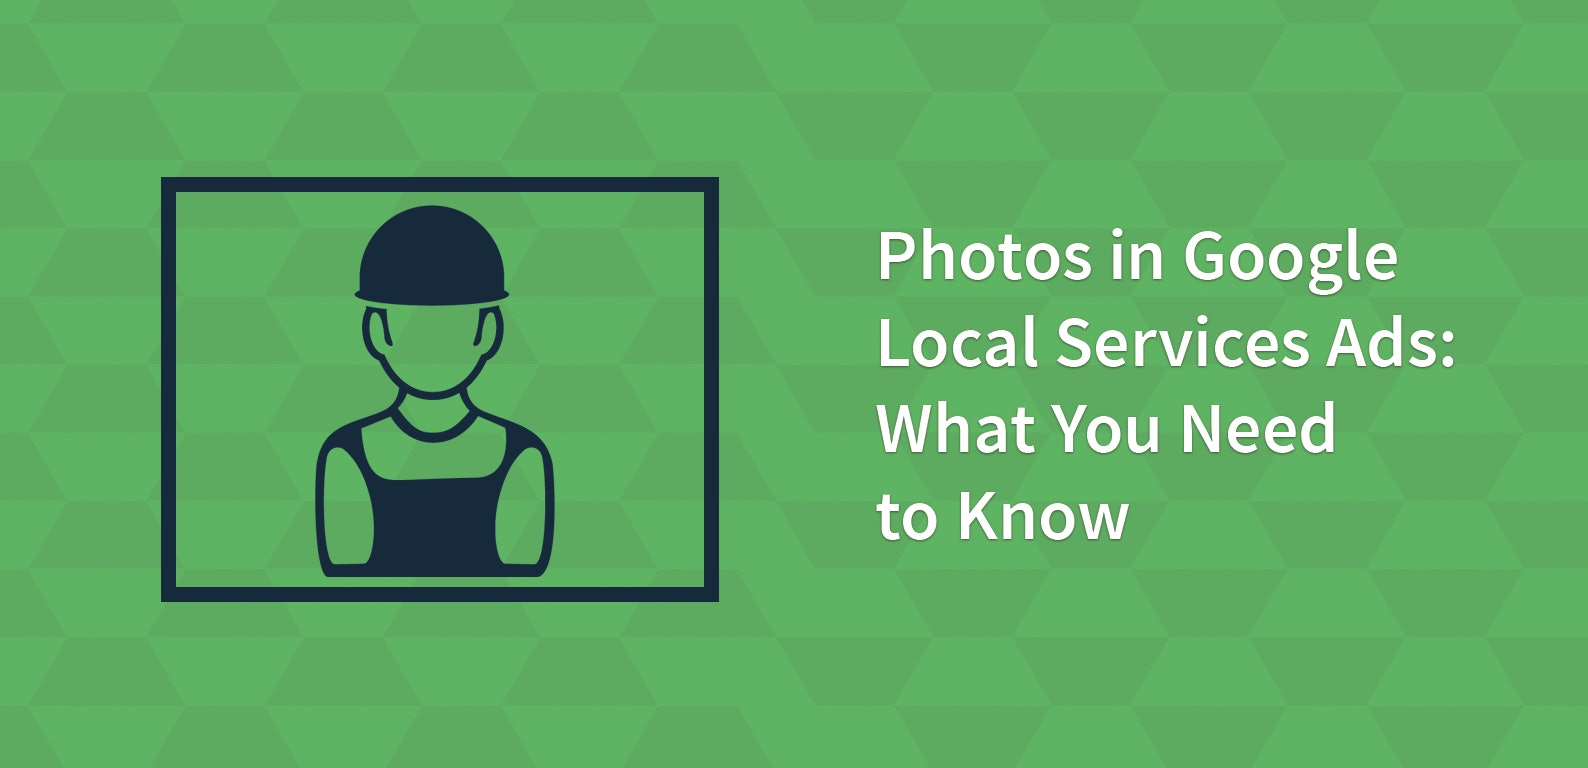 Photos in Google Local Services Ads: What You Need to Know